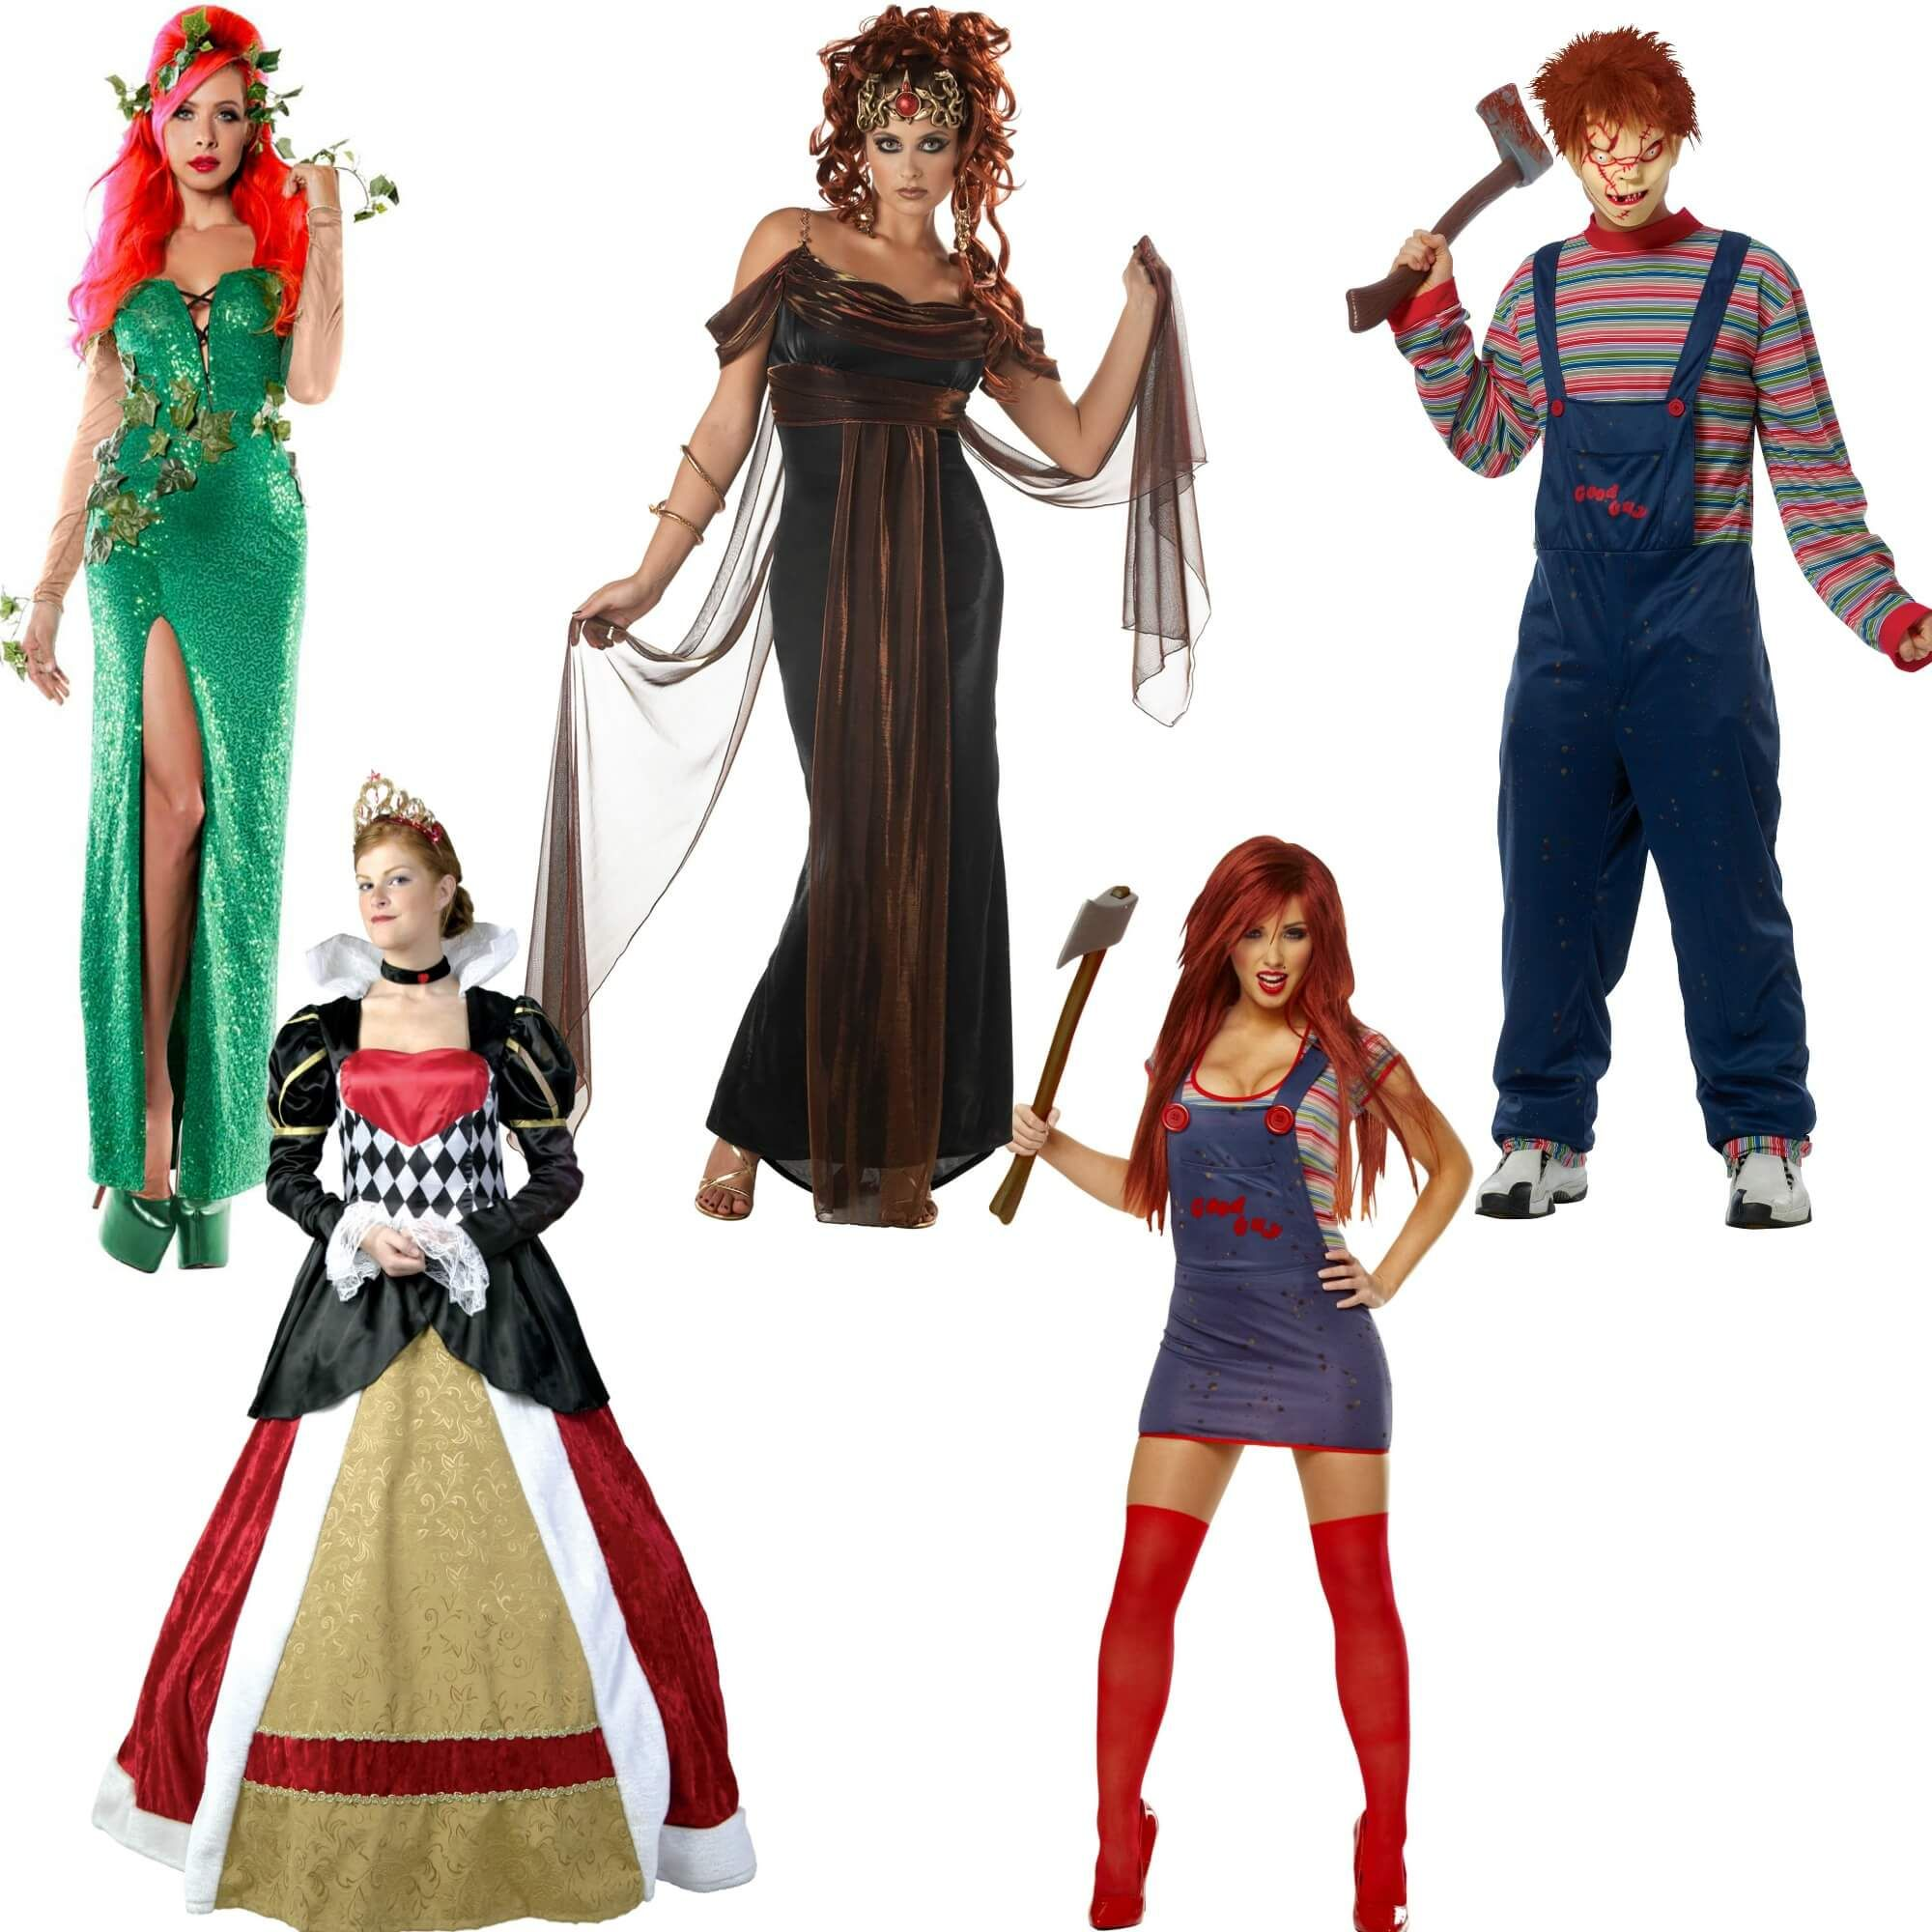 sc 1 st  Pinterest & Halloween Costumes for Redheads